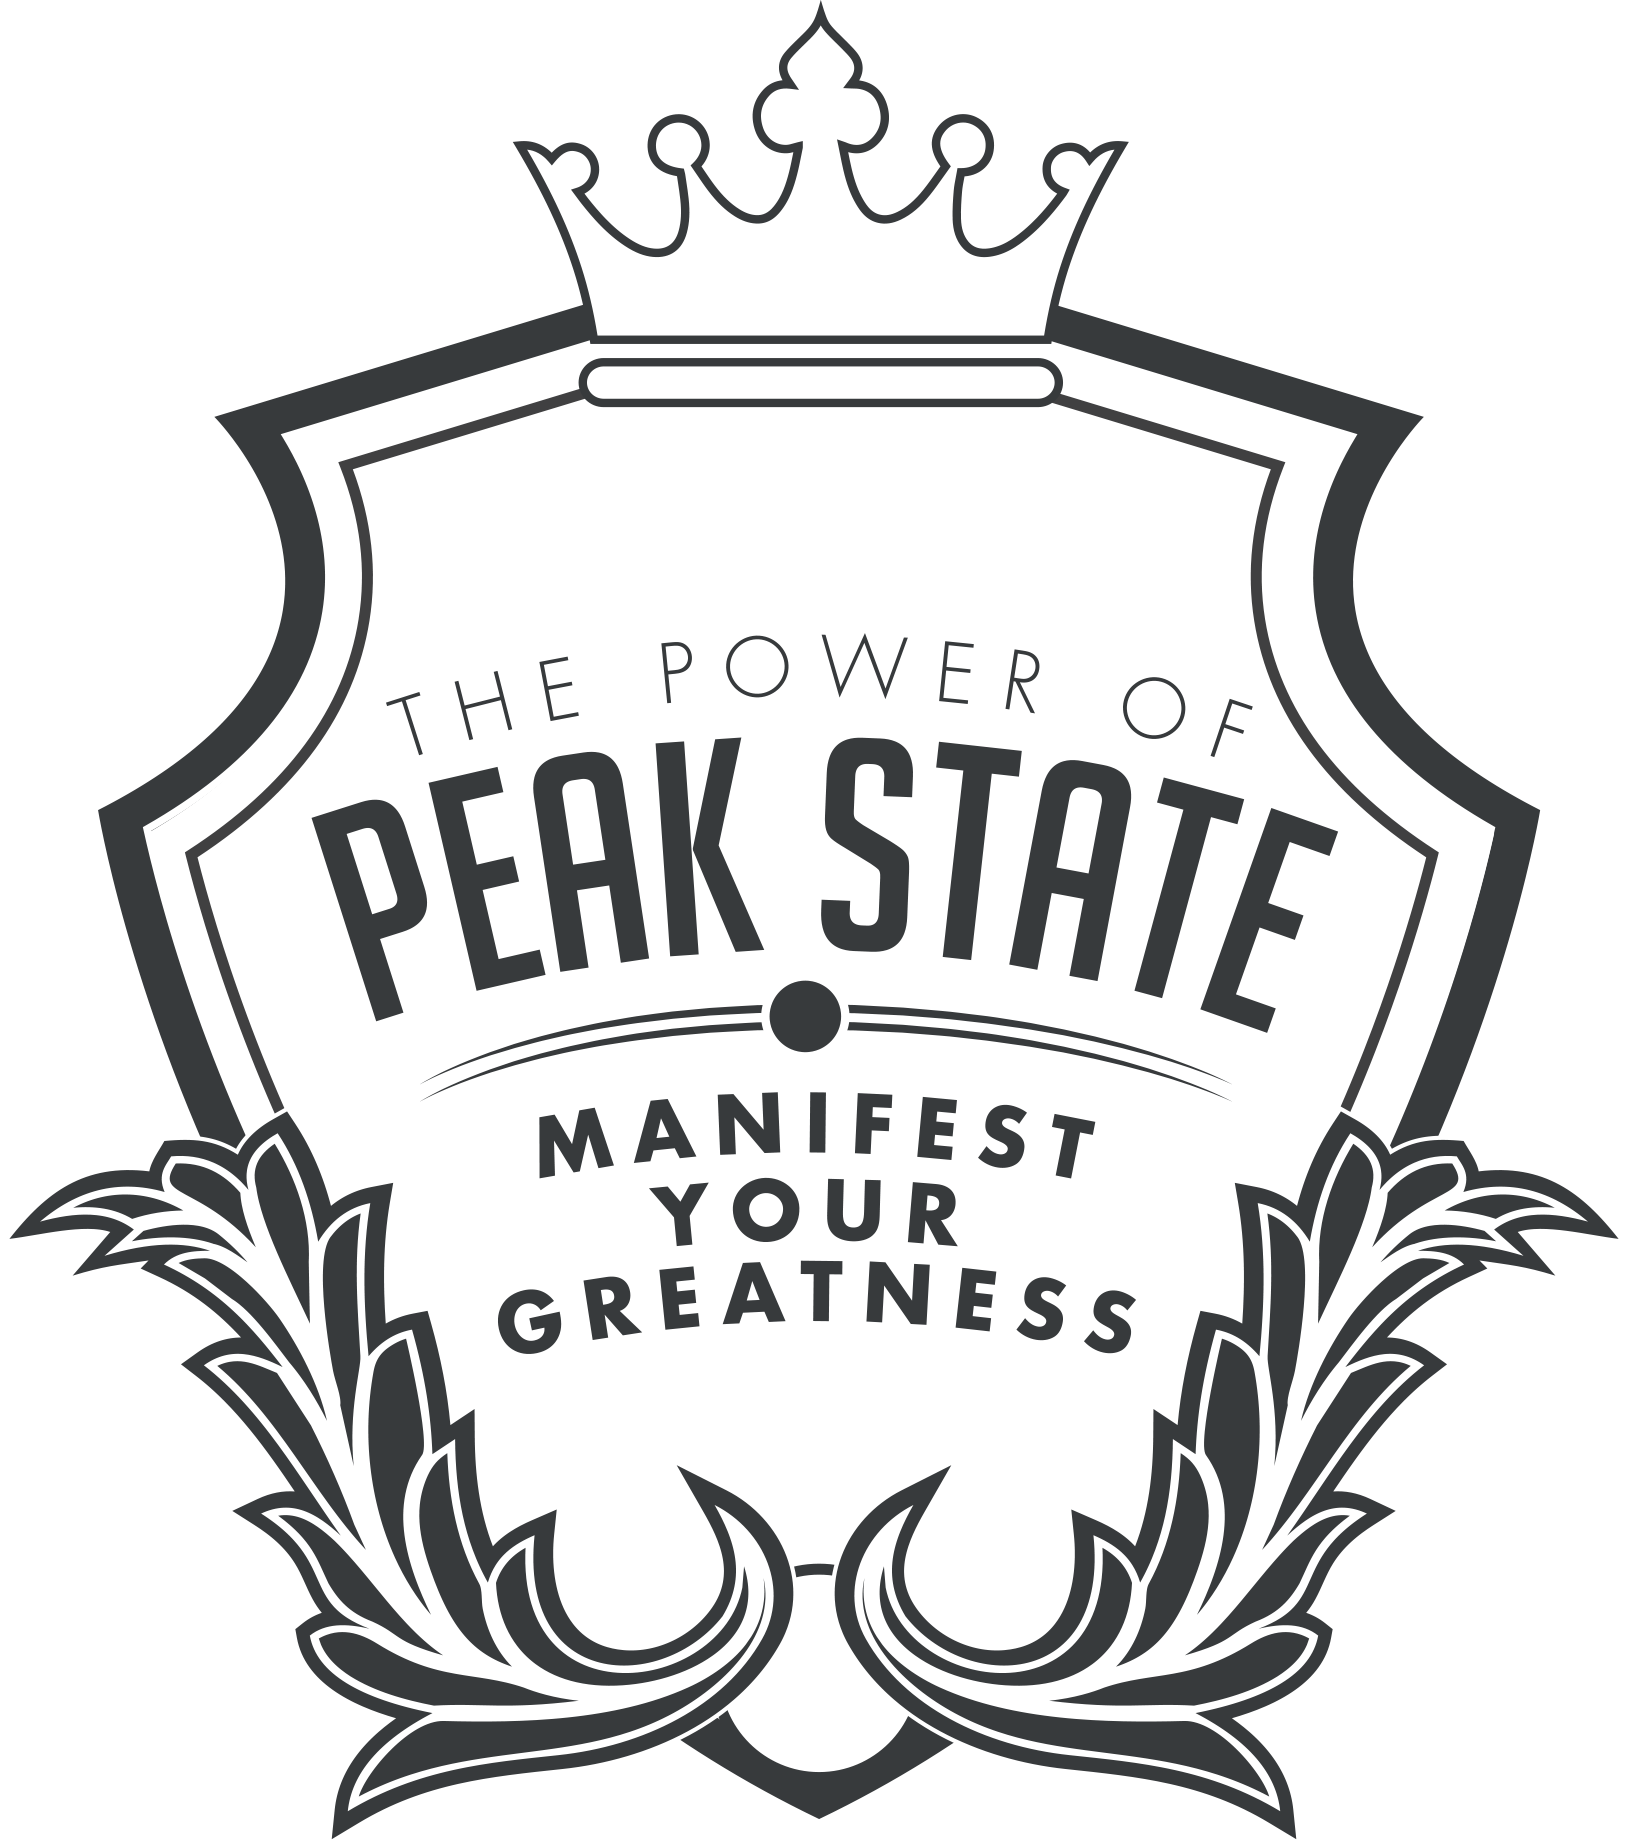 Public Speaker-Logo-The Power Of Peak State